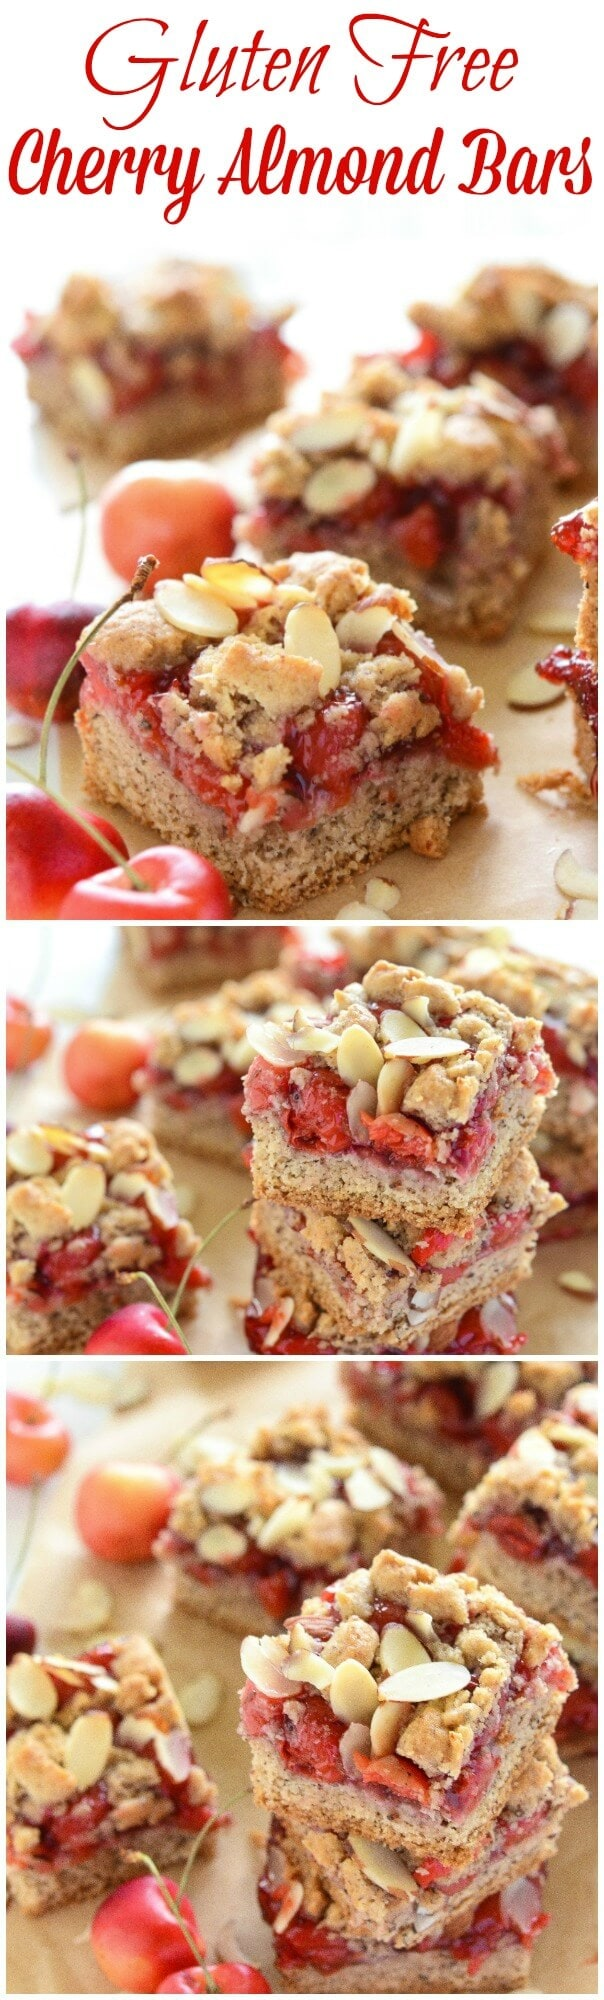 Gluten Free Cherry Almond Bars photo collage